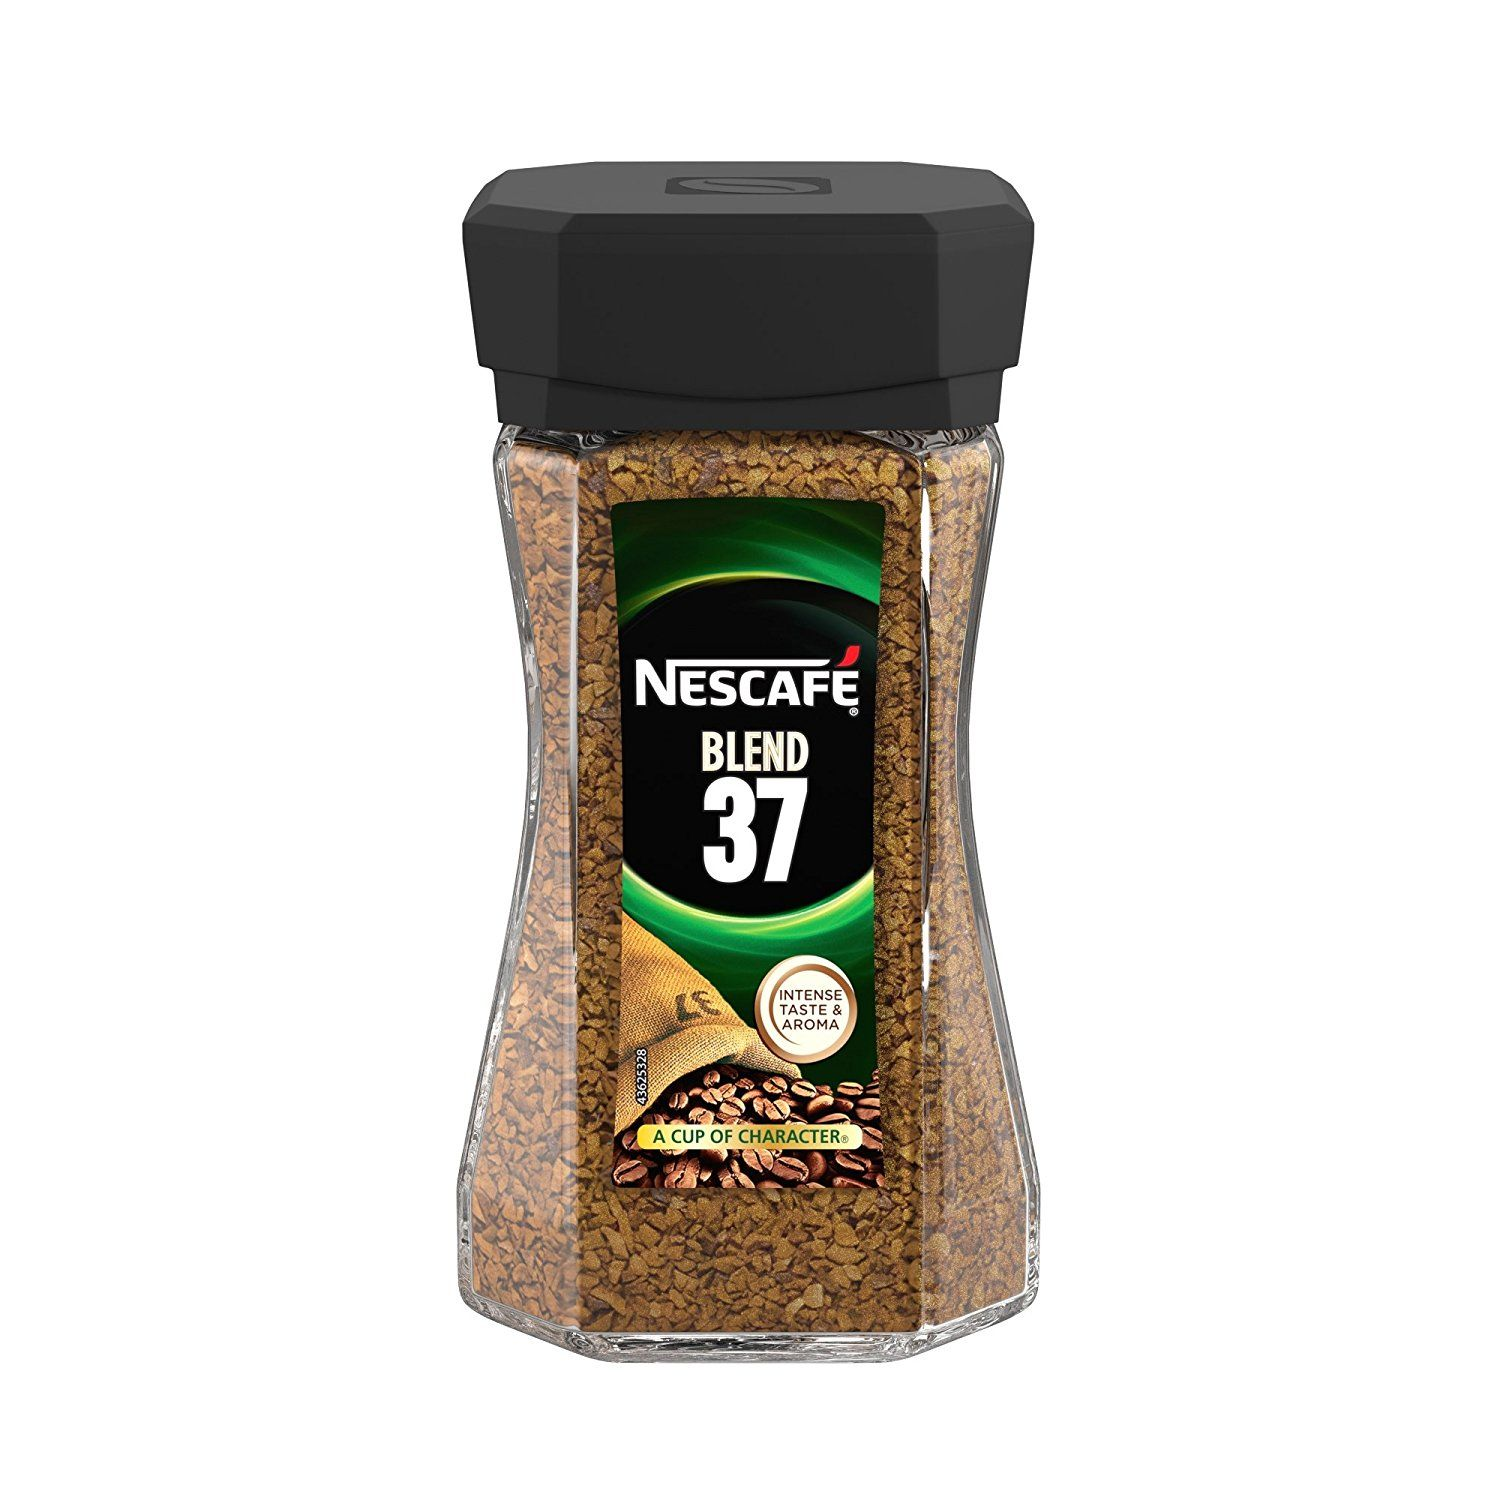 1 X NESCAFE BLEND 37 INSTANT COFFEE 100G Check out the